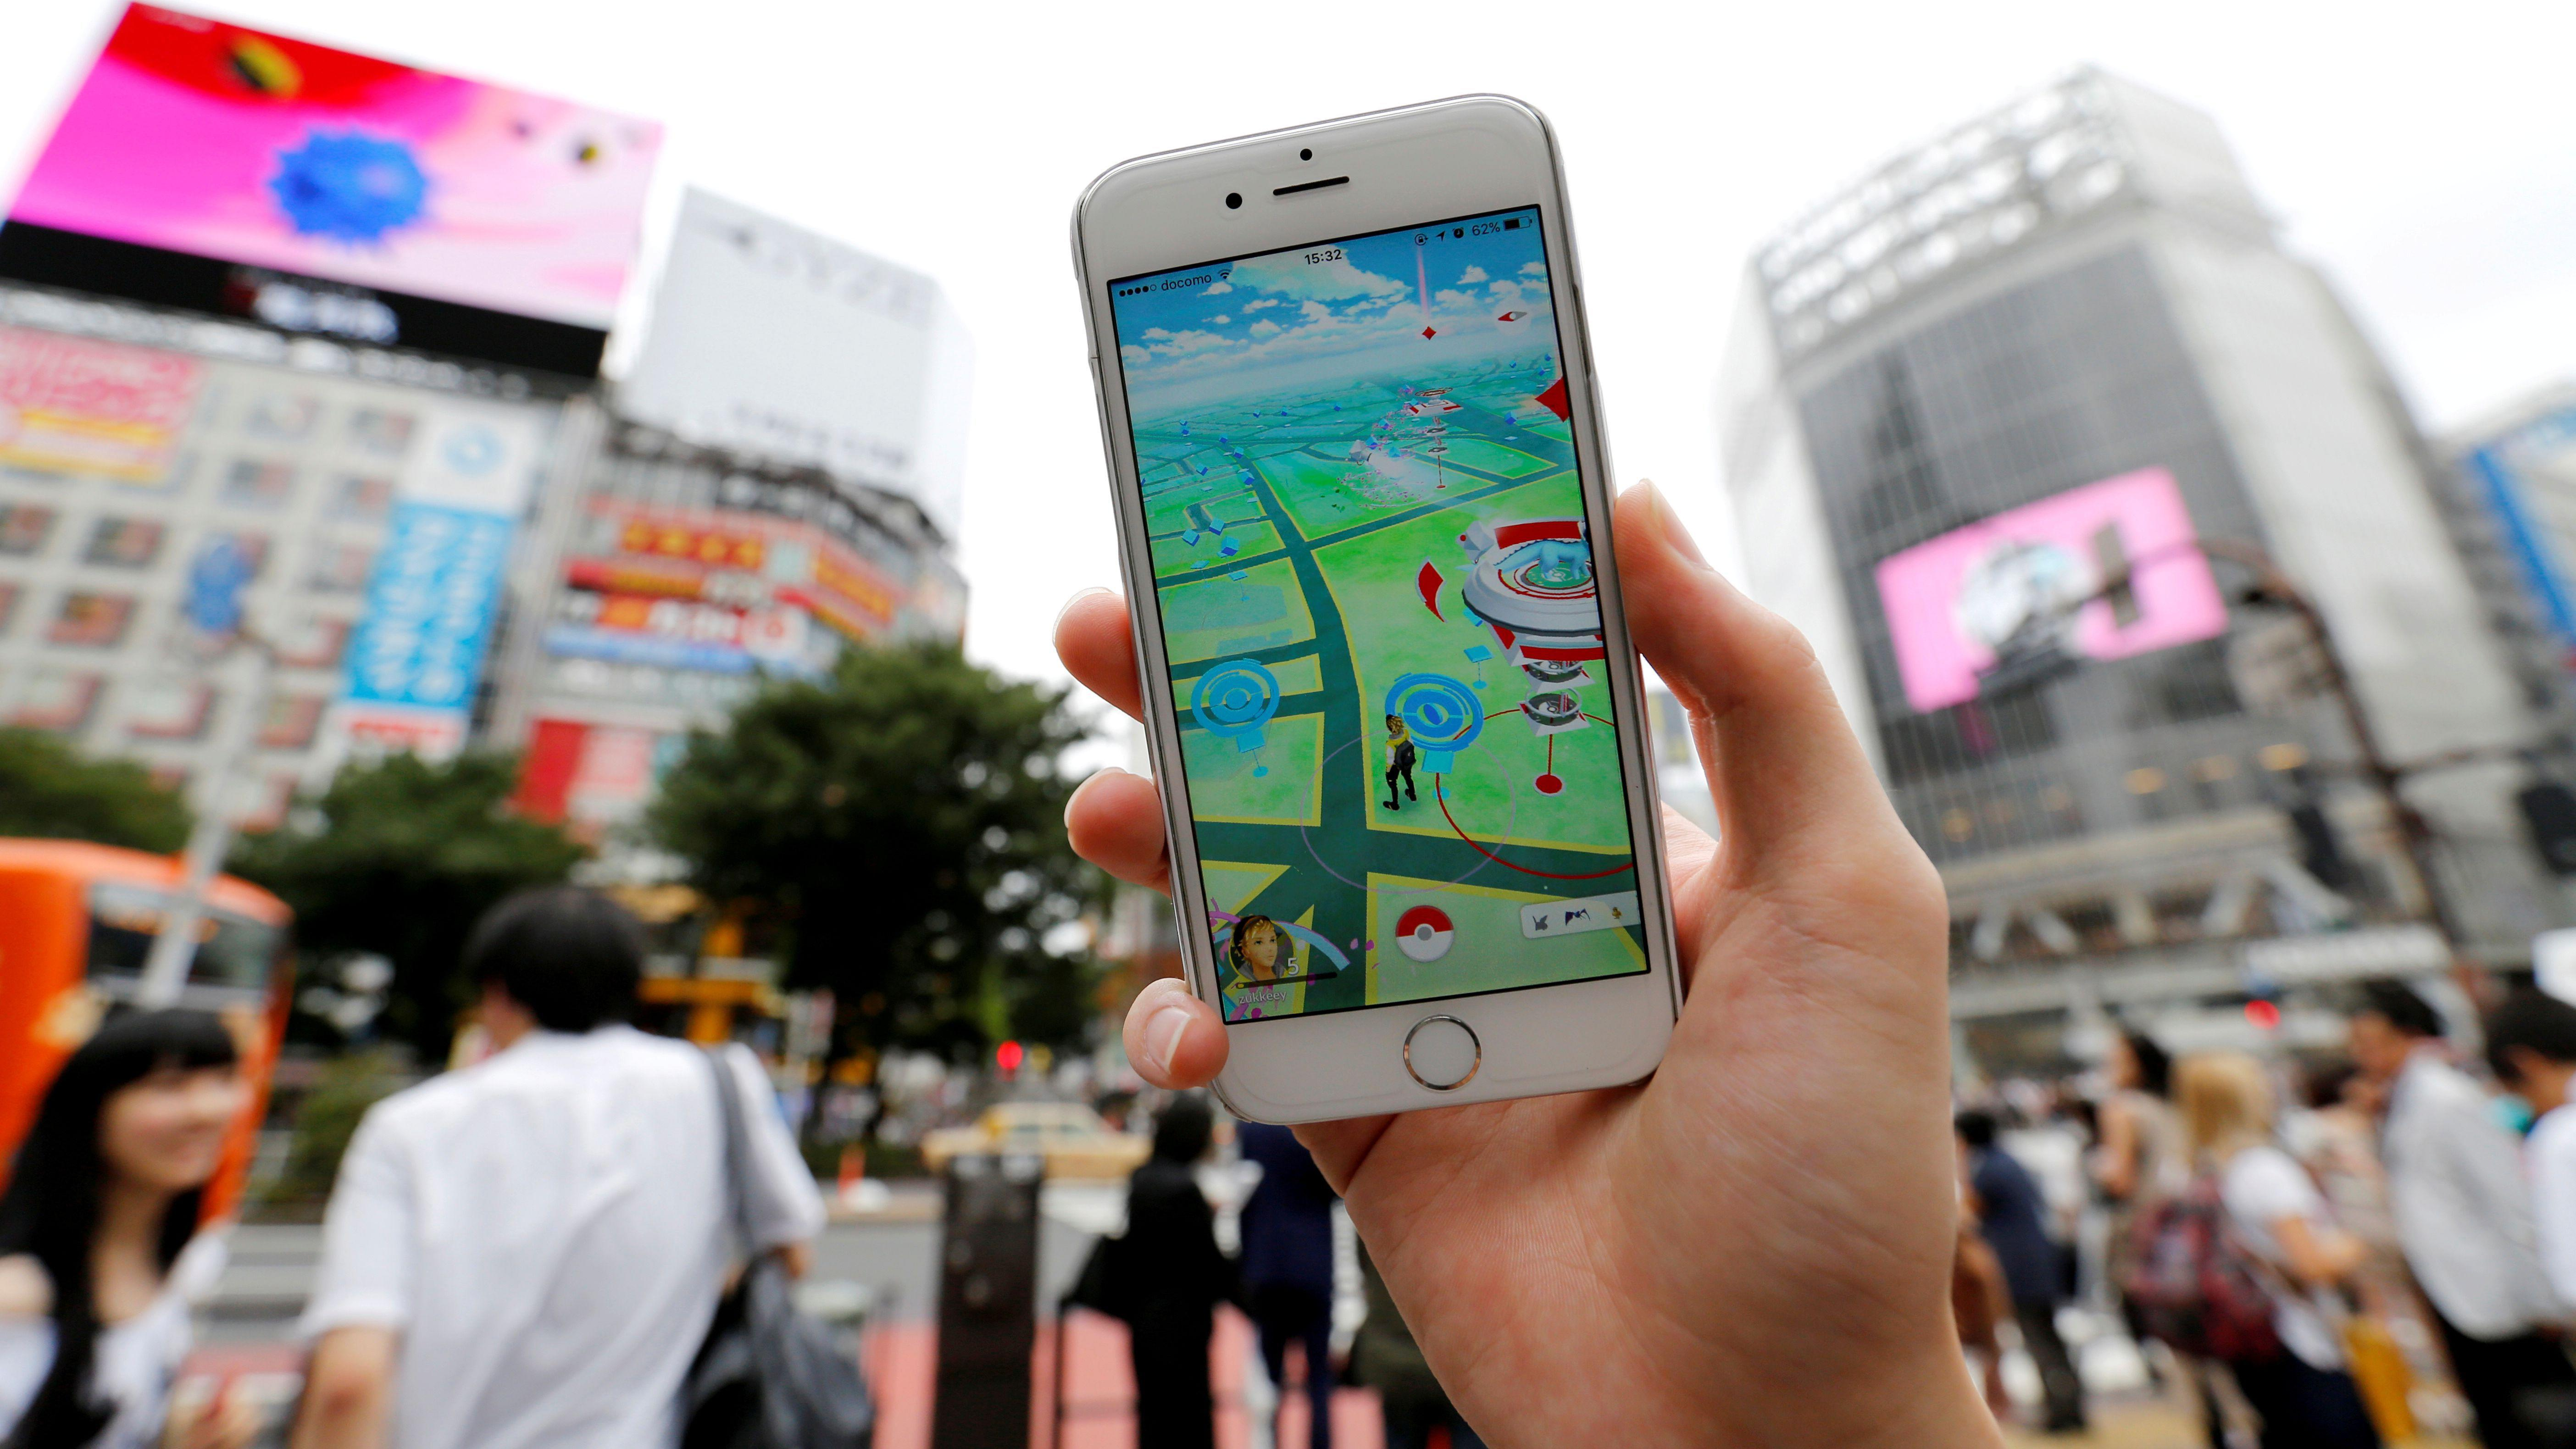 The company that created Pokemon Go is now worth over $3 billion